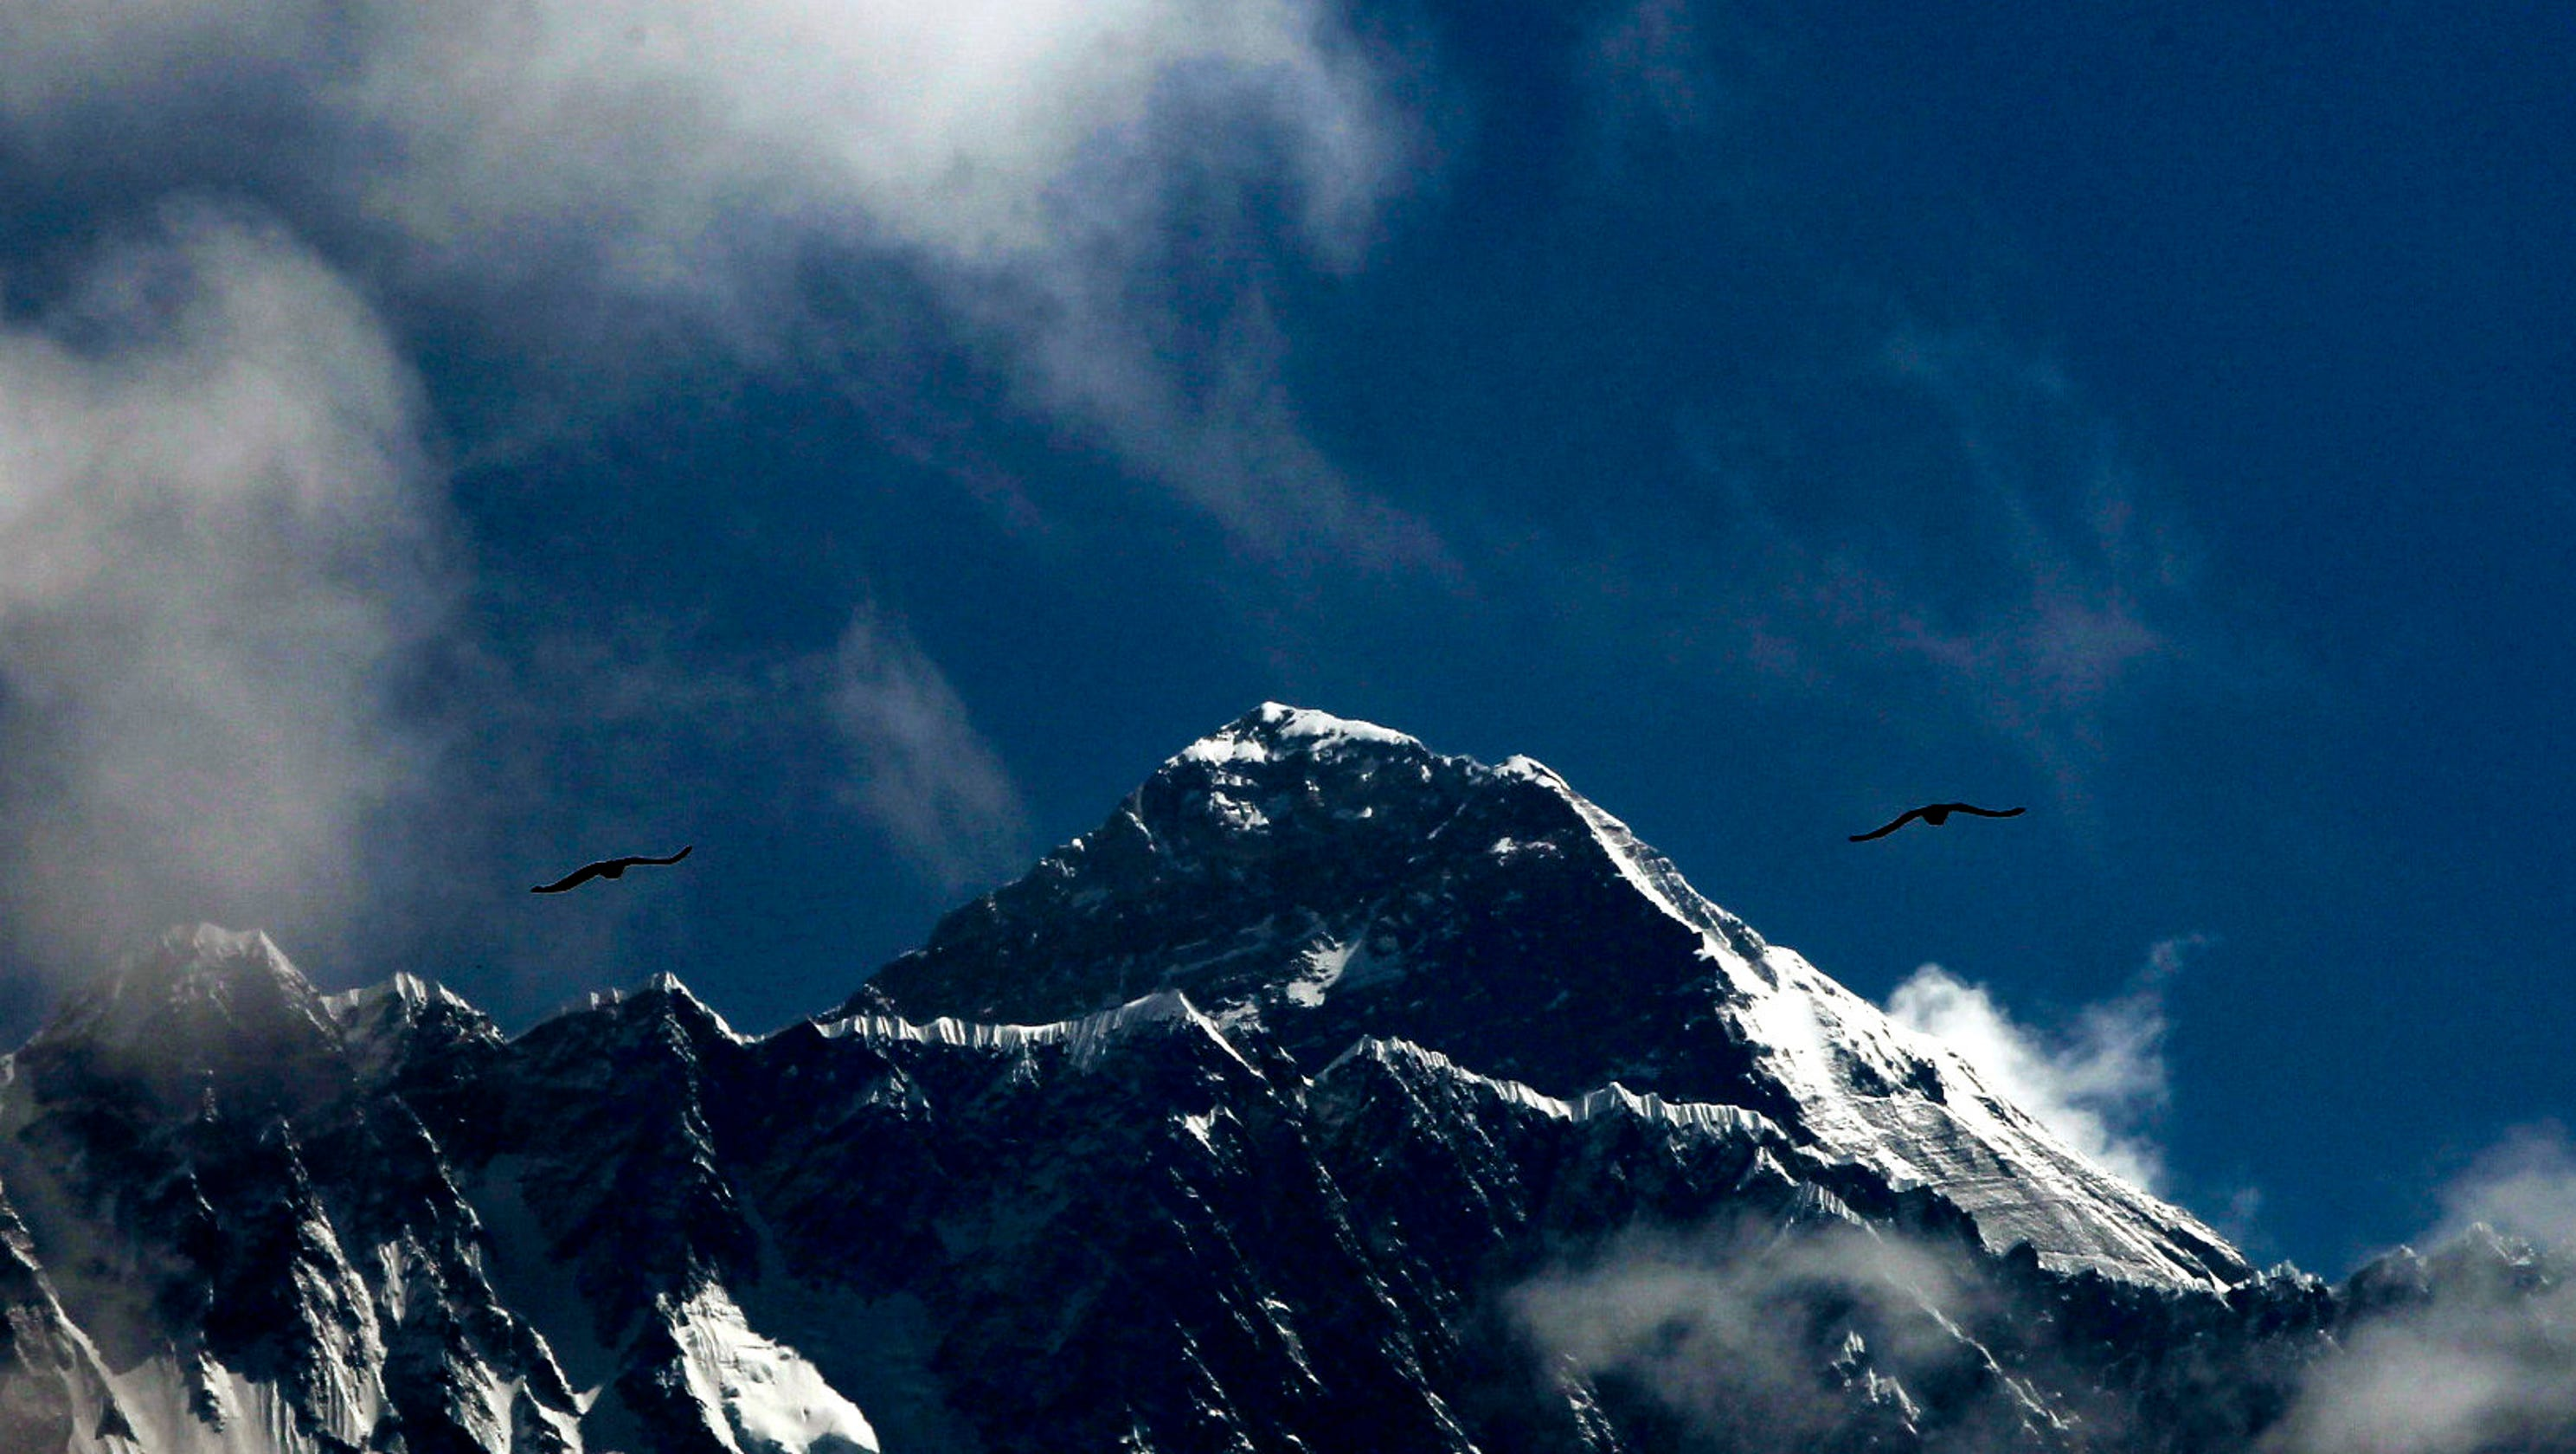 Deaths rise as Nepal issues more permits for Mount Everest